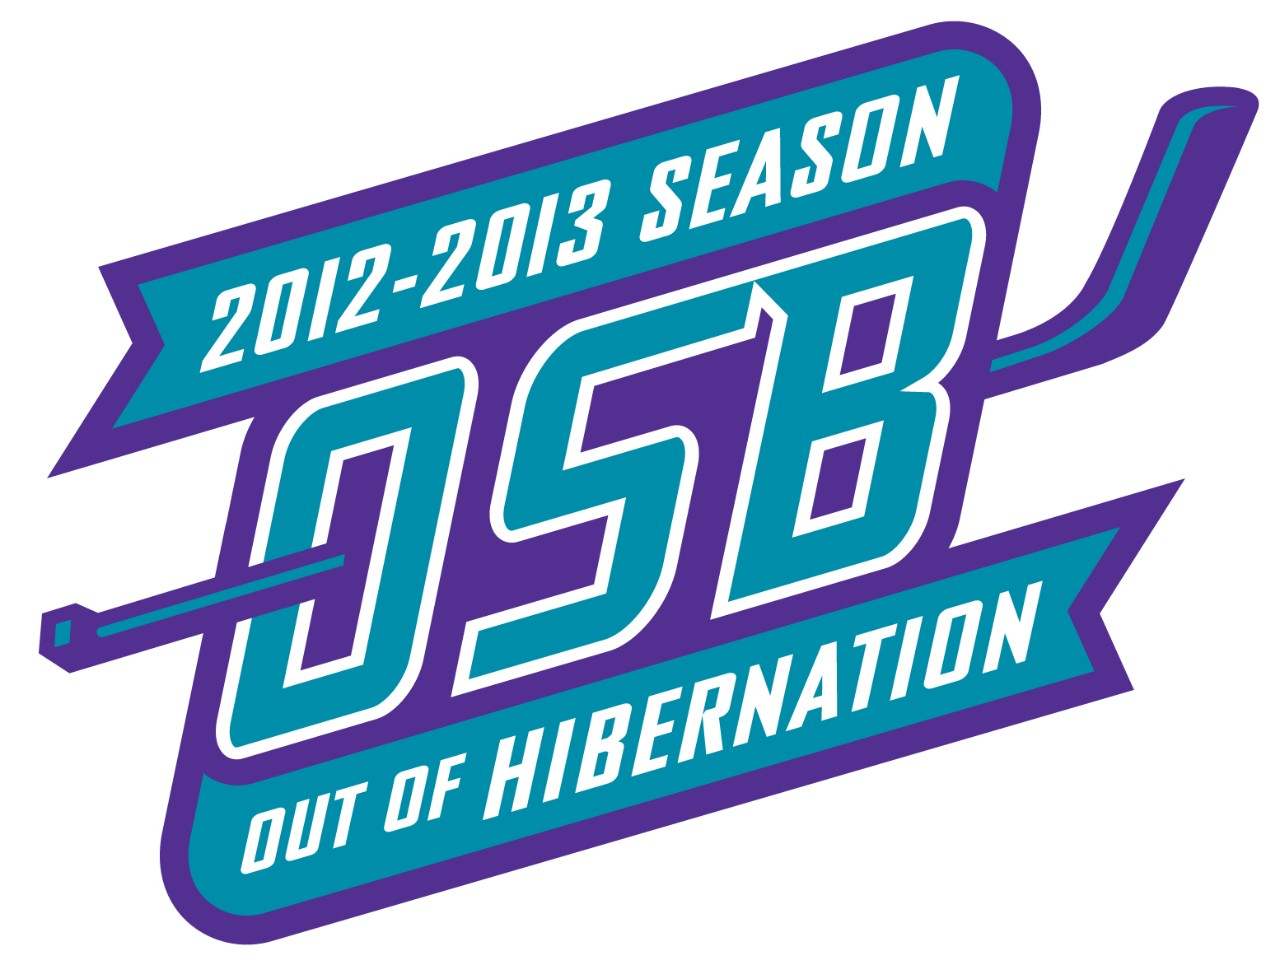 """Solar Bears Celebrate End of """"Hibernation"""" with New Patch"""